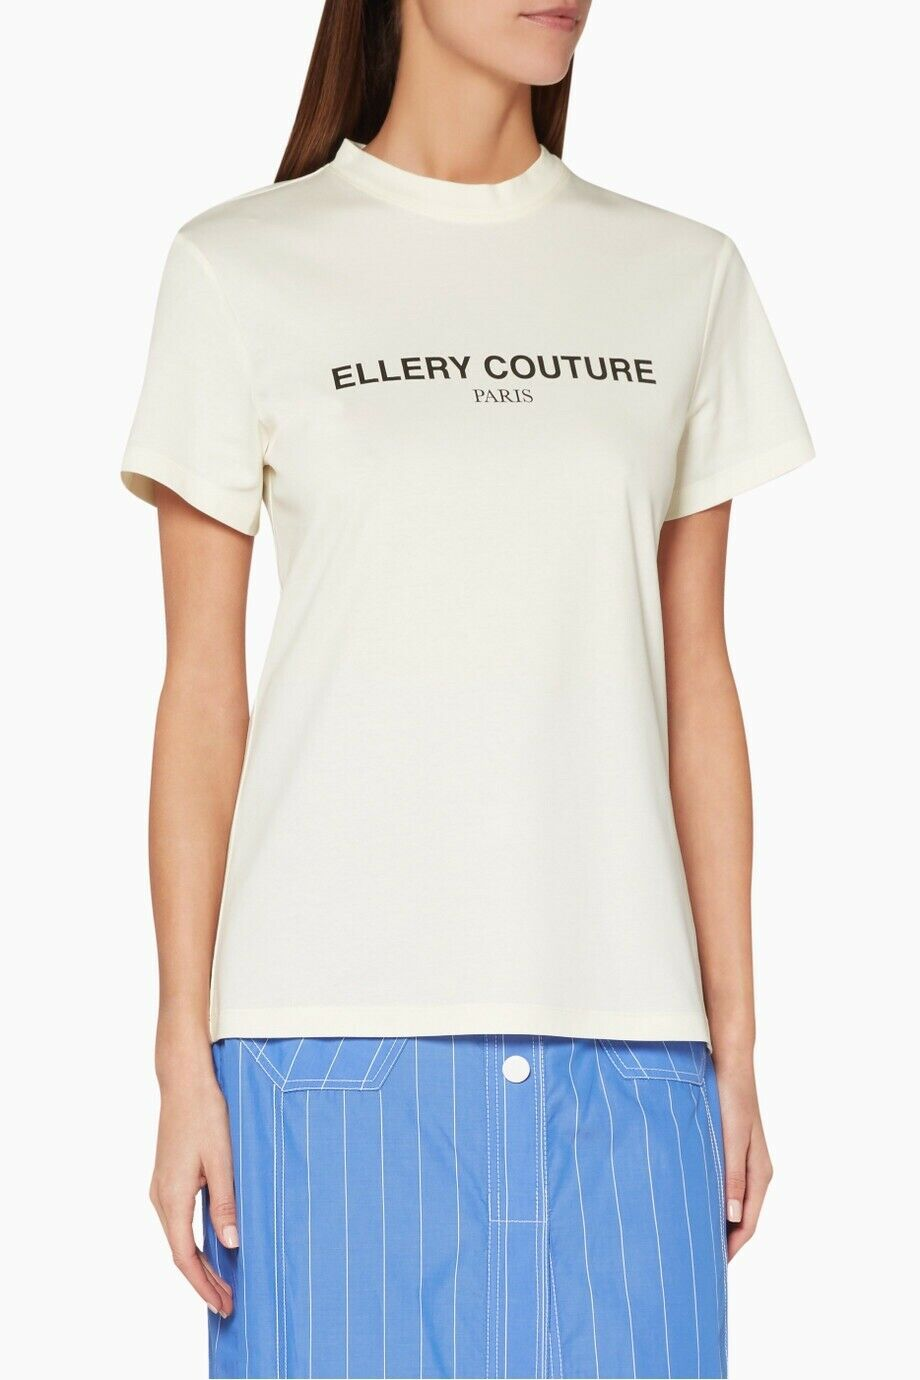 ELLERY‎  Ellery Couture Printed Cotton T-Shirt Size XS.